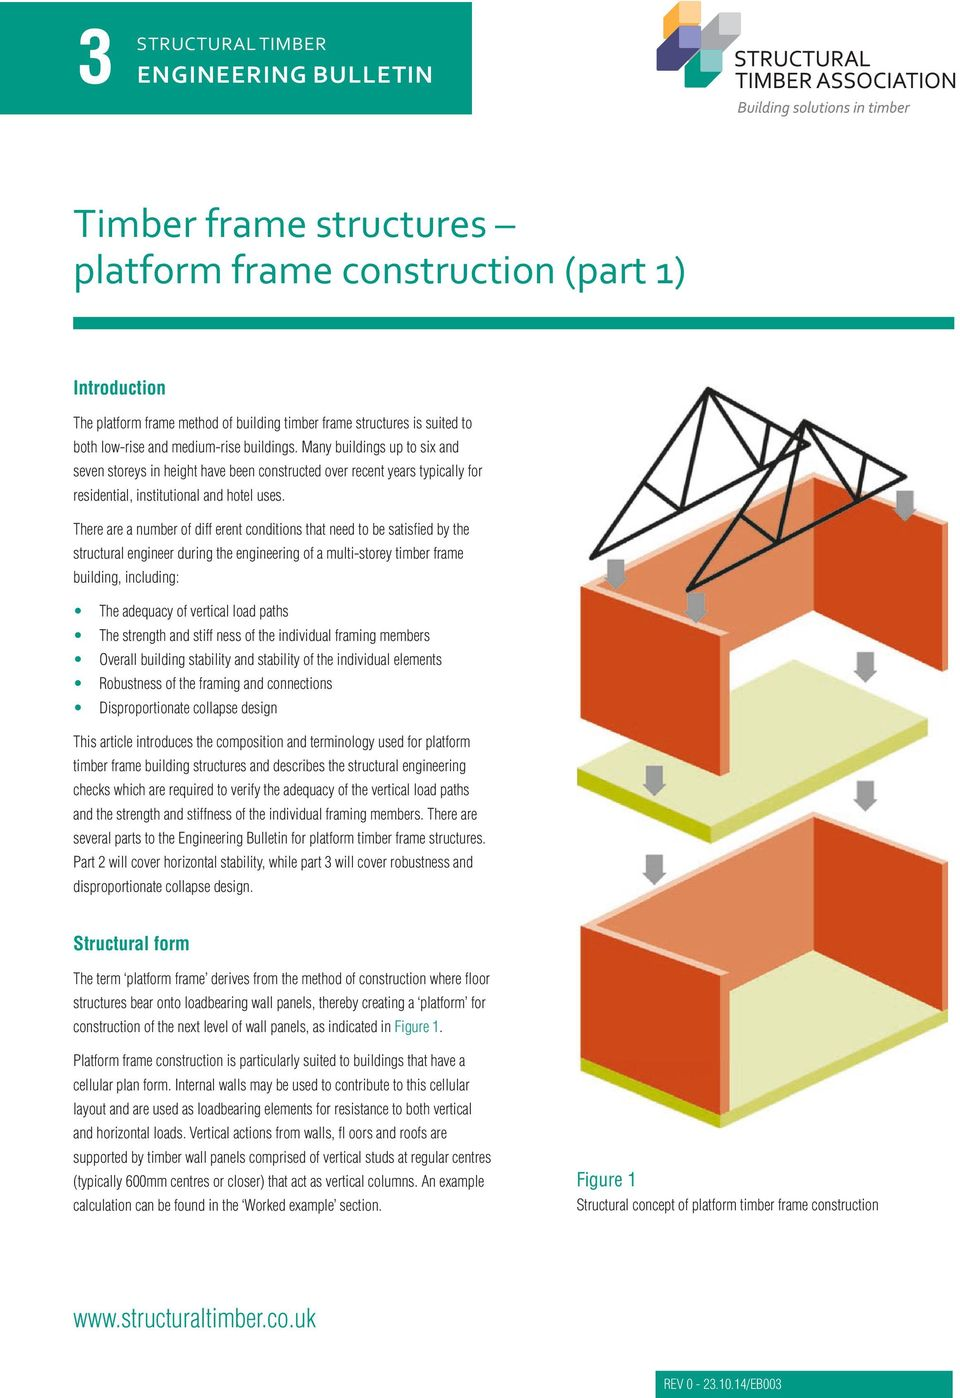 There are a number of diff erent conditions that need to be satisfied by the structural engineer during the engineering of a multi-storey timber frame building, including: The adequacy of vertical